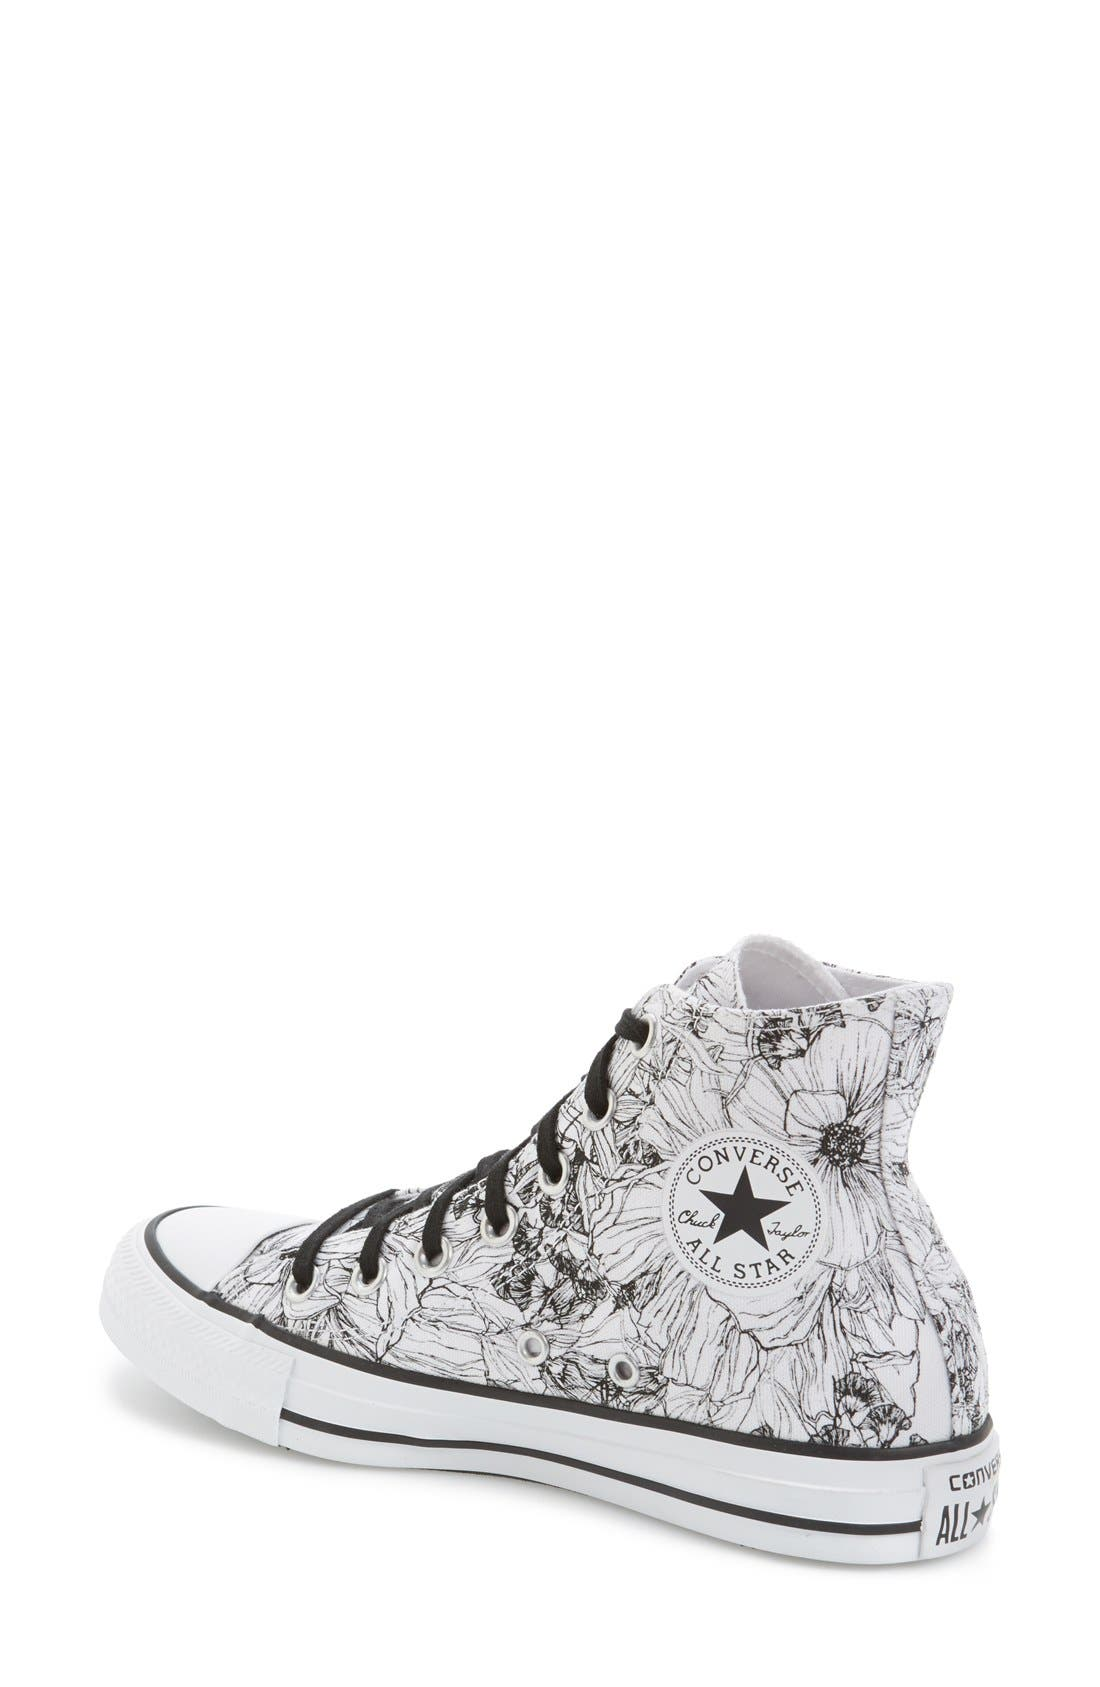 Alternate Image 2  - Converse Chuck Taylor® All Star® Floral Outline High Top Sneaker (Women)